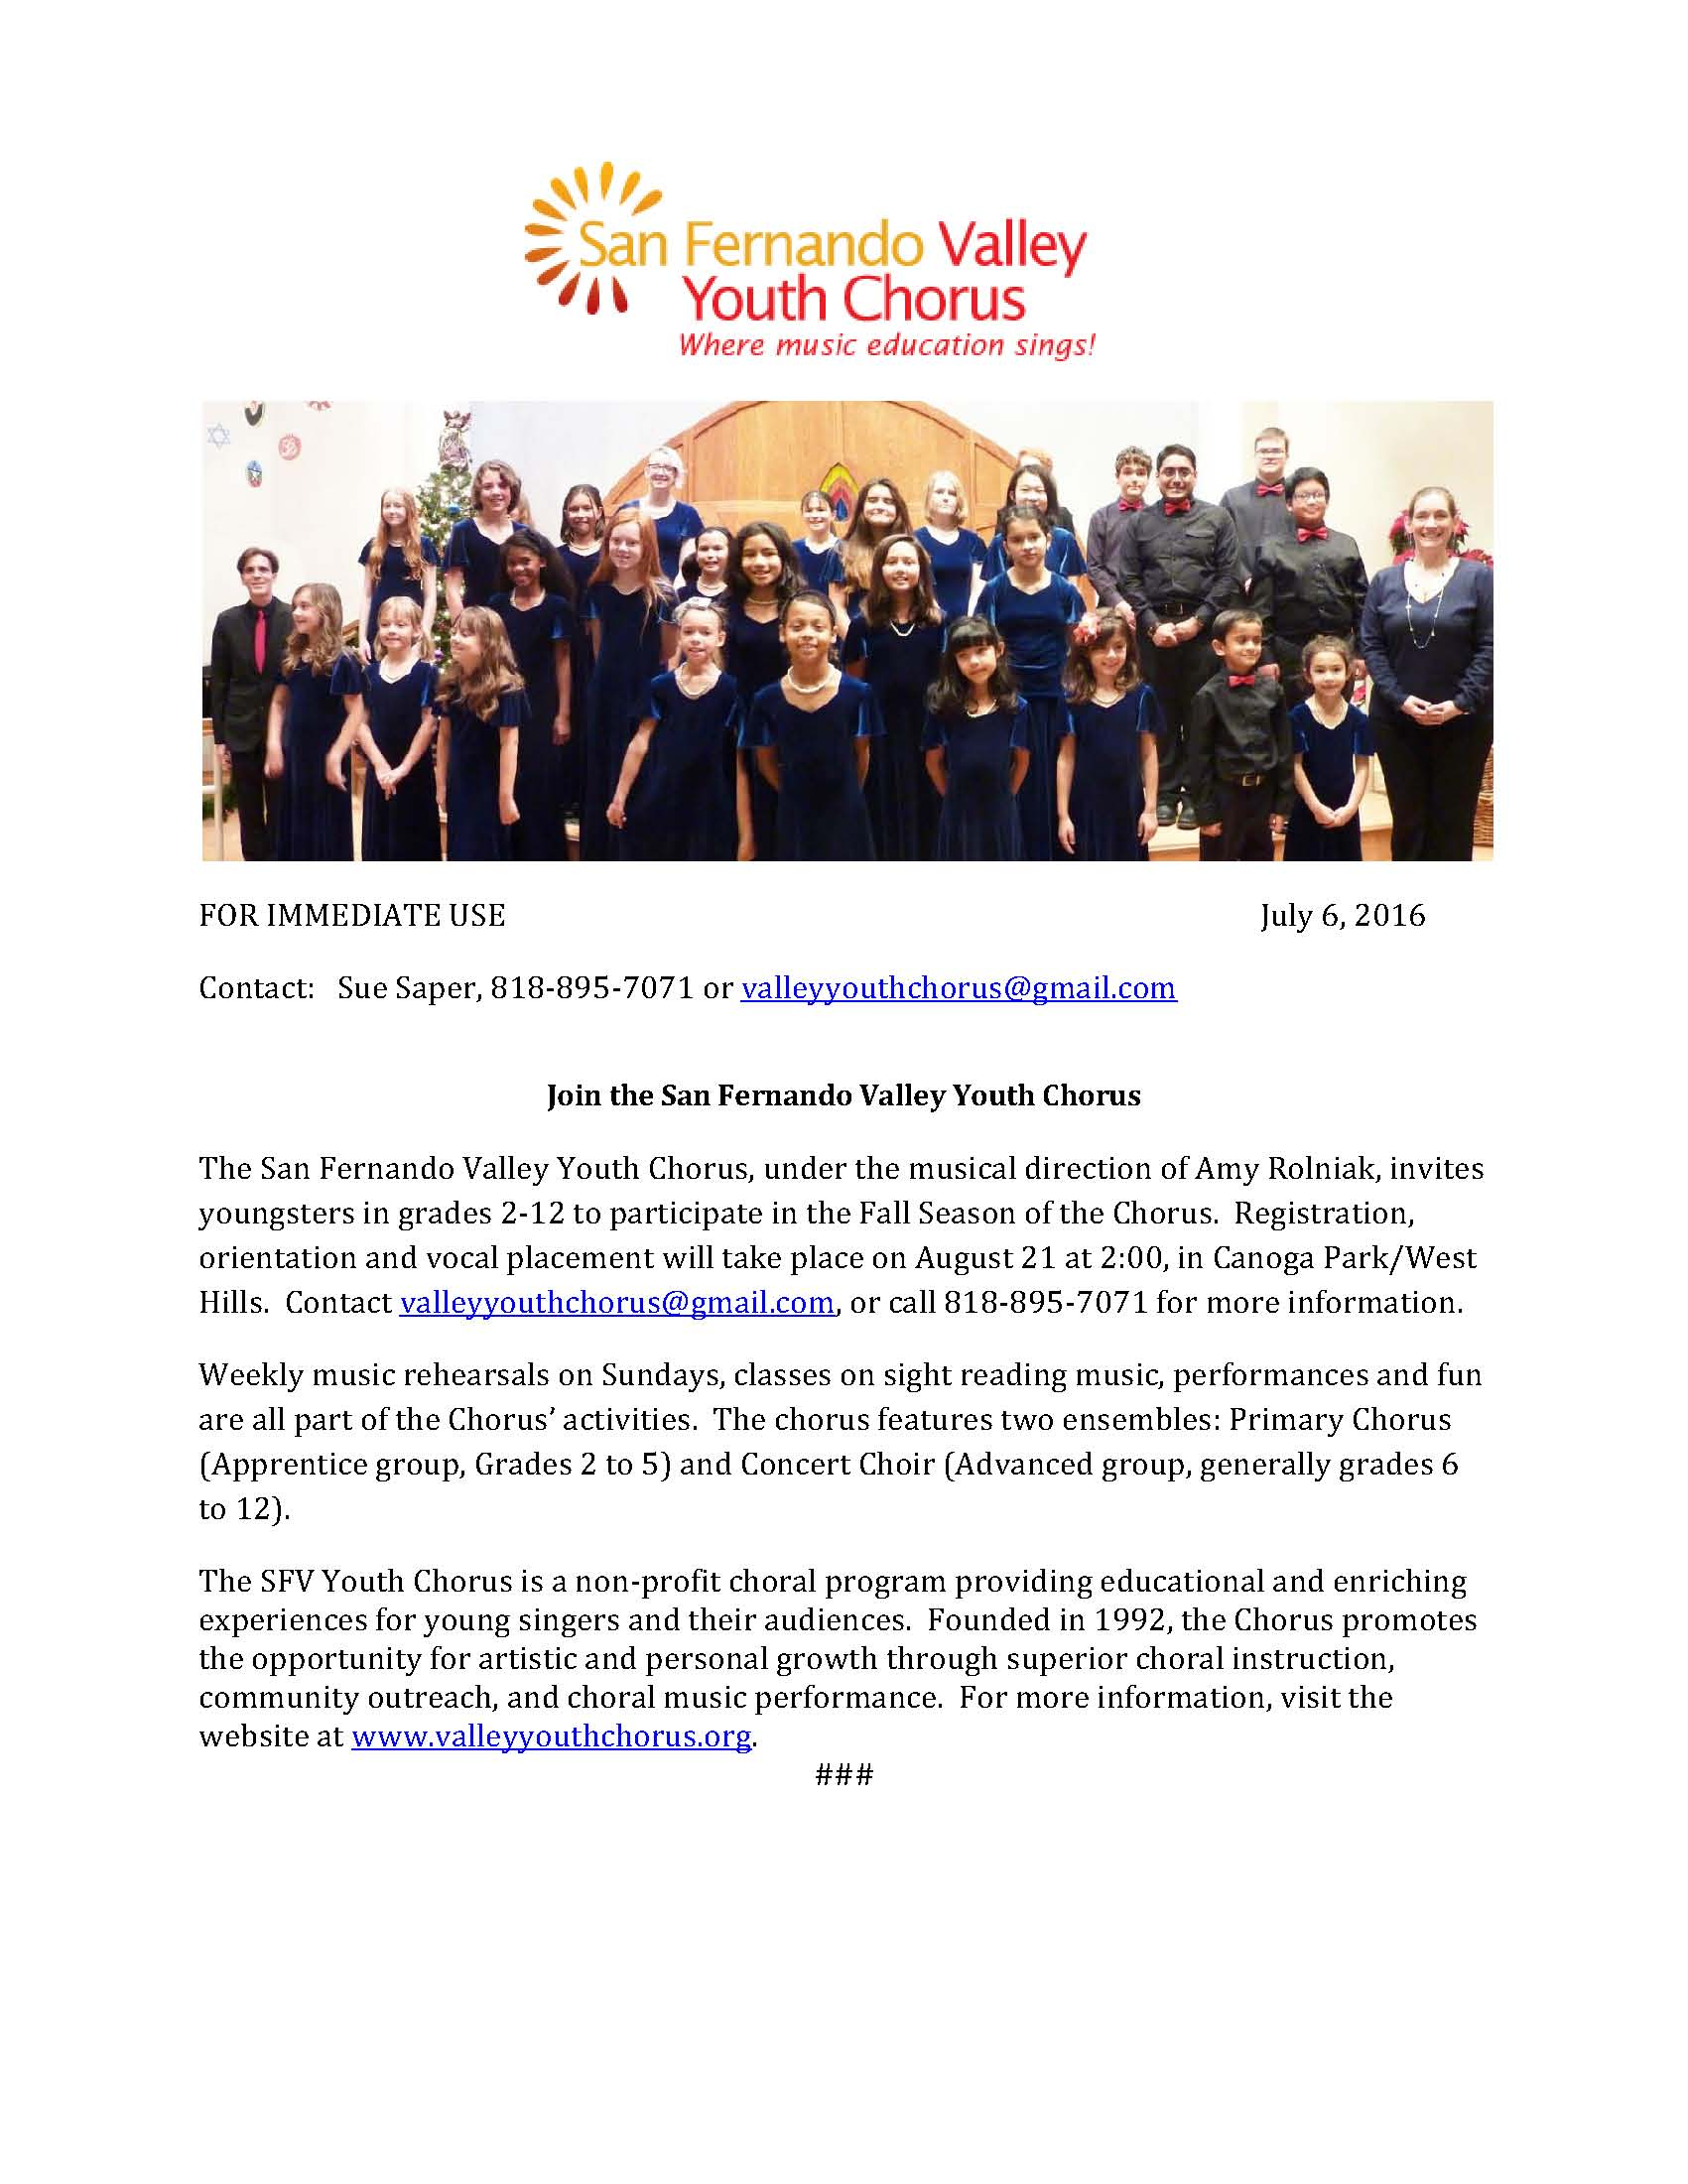 SFVYC_press_release_7_2016_(1)_youth_corus.jpg